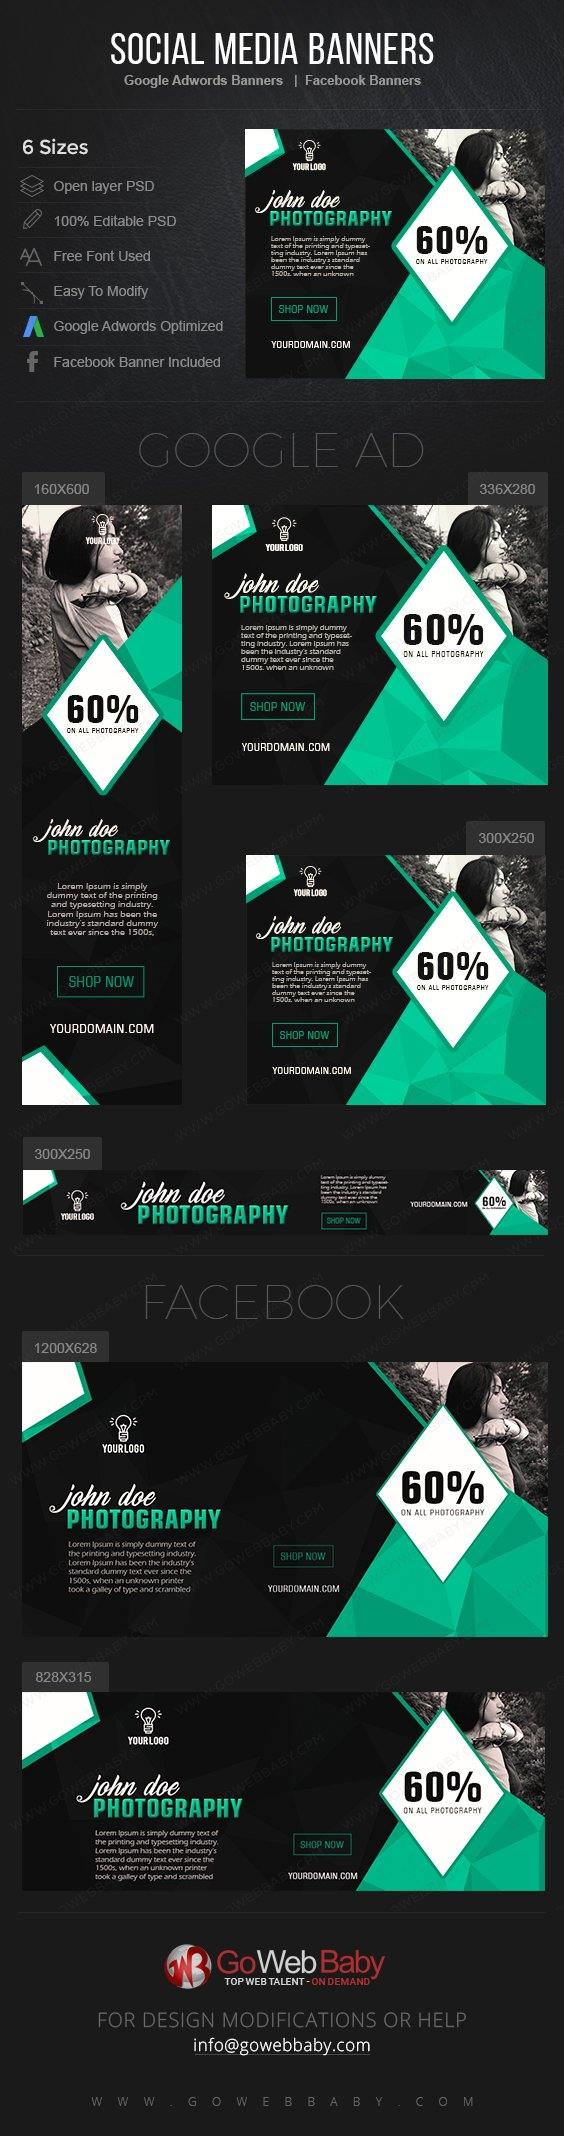 Google Adwords Display Banner with Facebook Banners - Fashion Photography For Website Marketing - GoWebBaby.Com